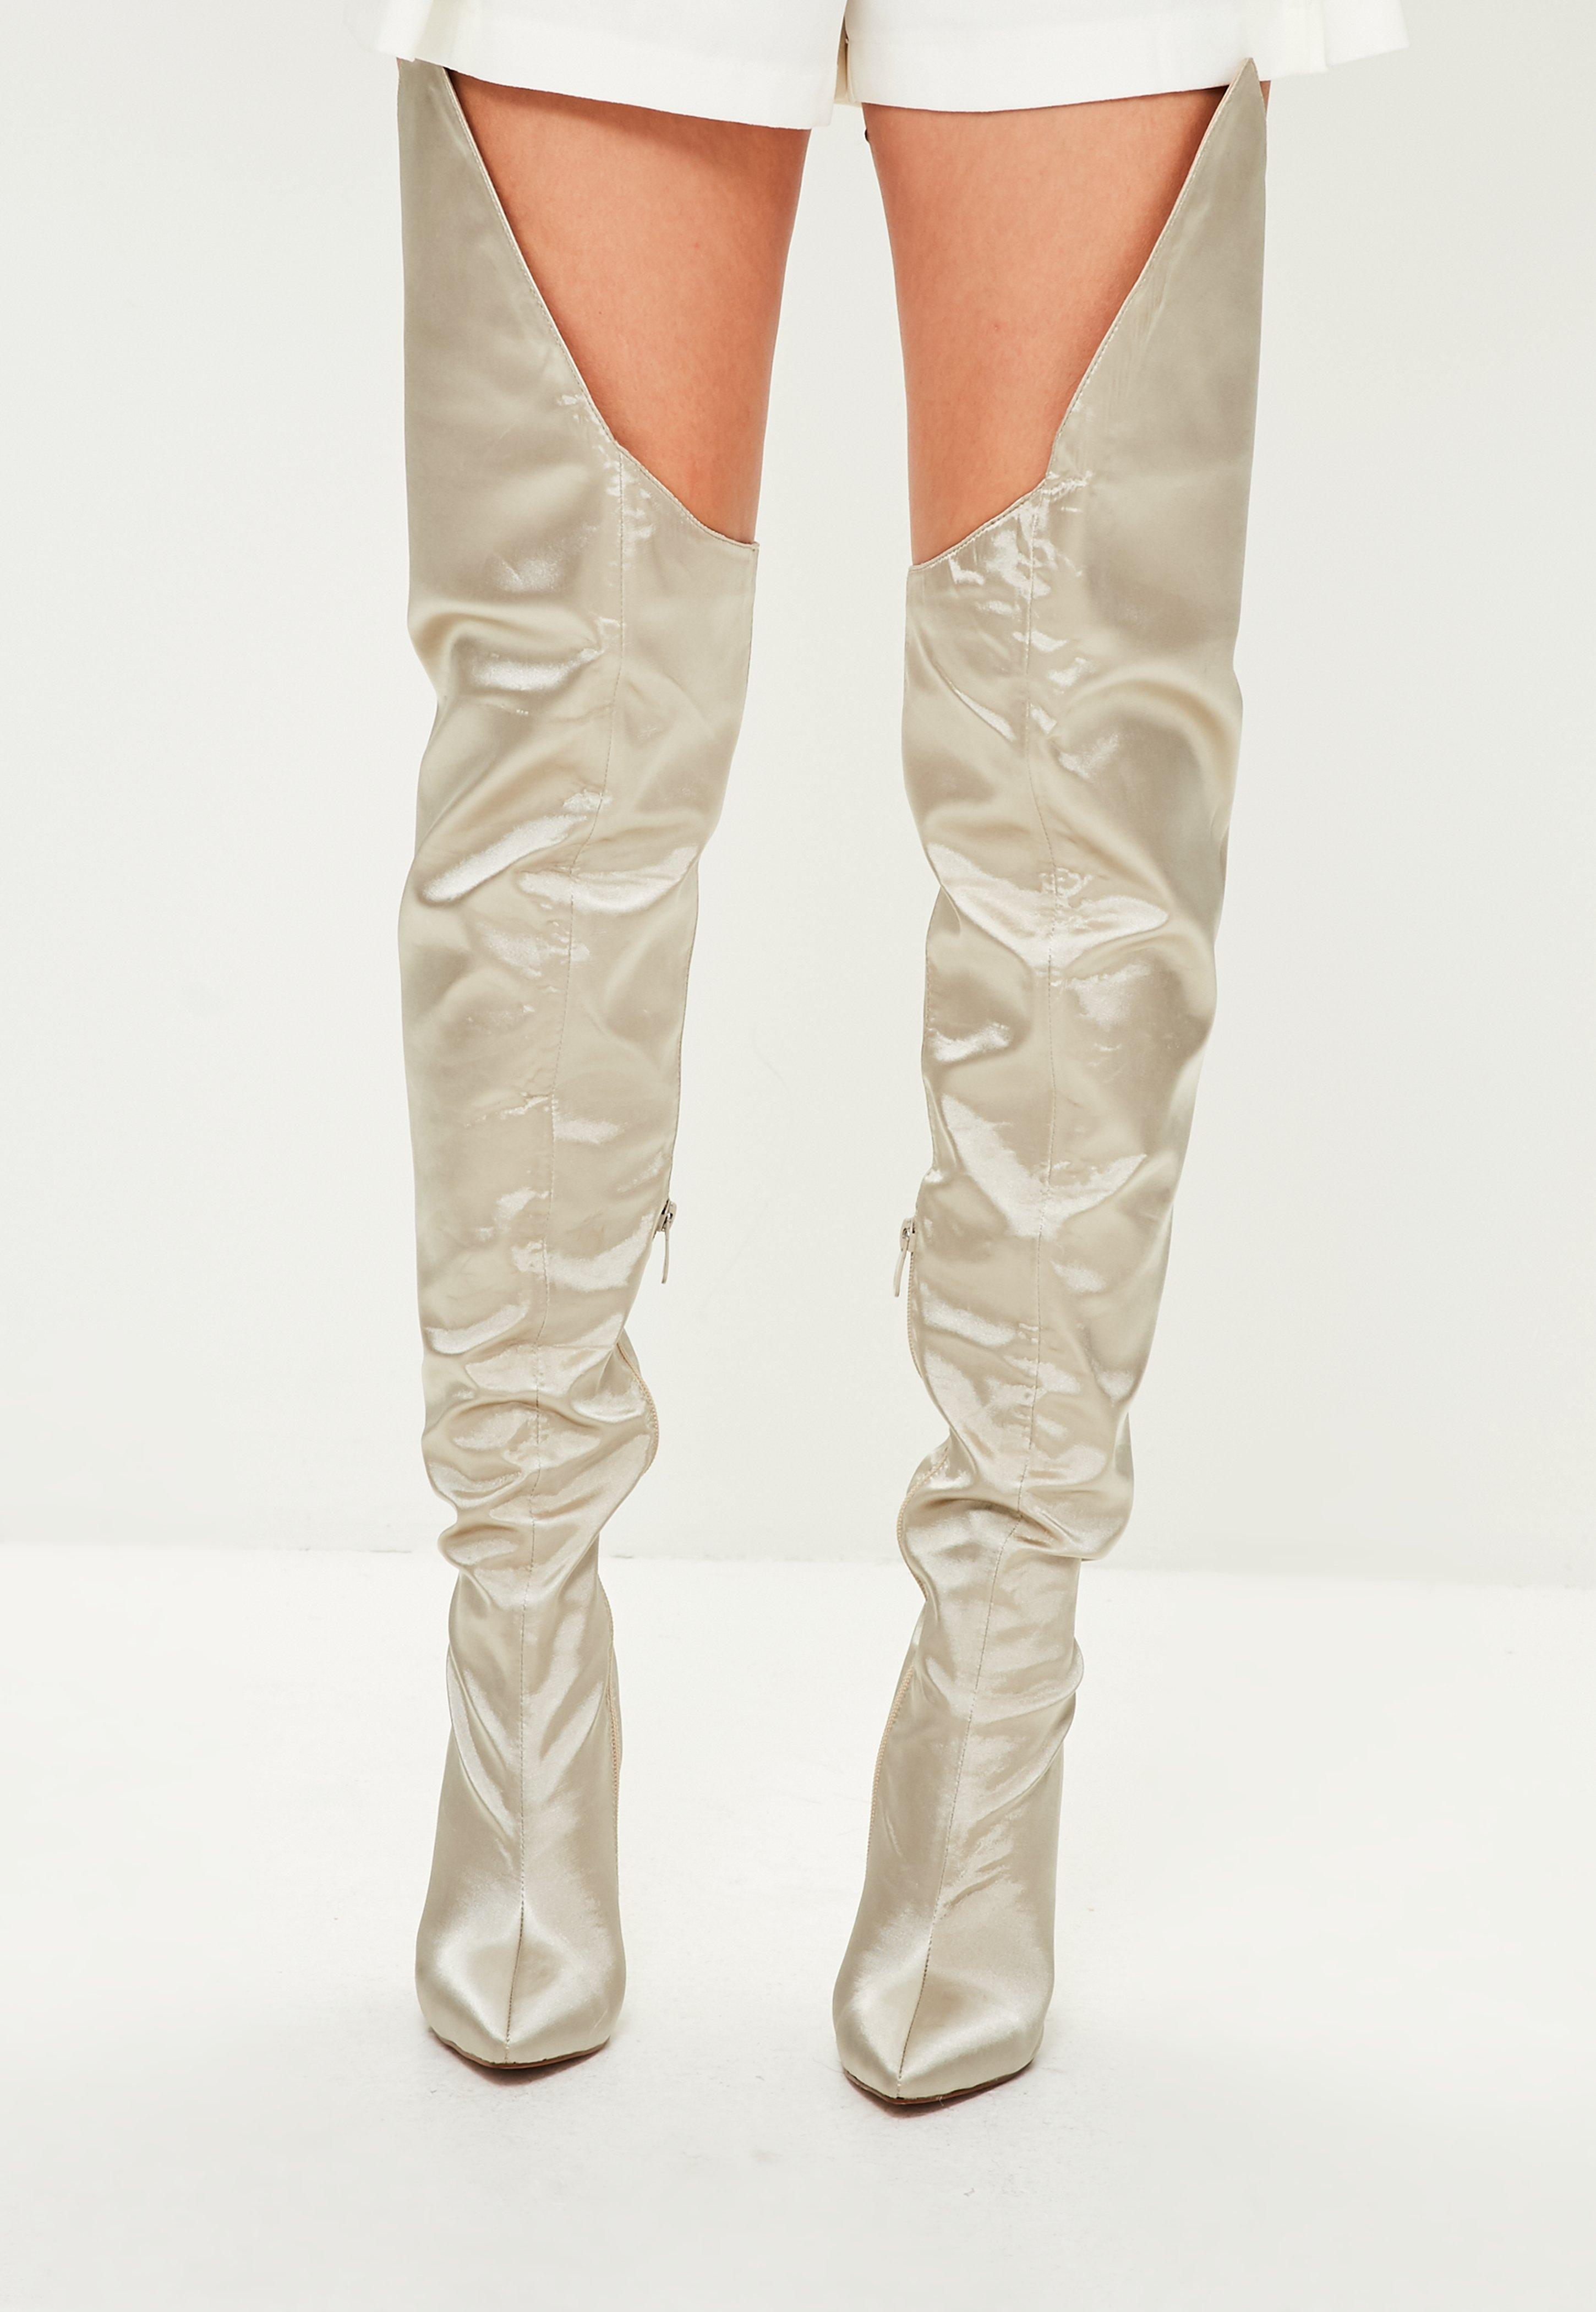 dab7f17481c Lyst - Missguided Beige Satin Over The Knee Boots in Natural